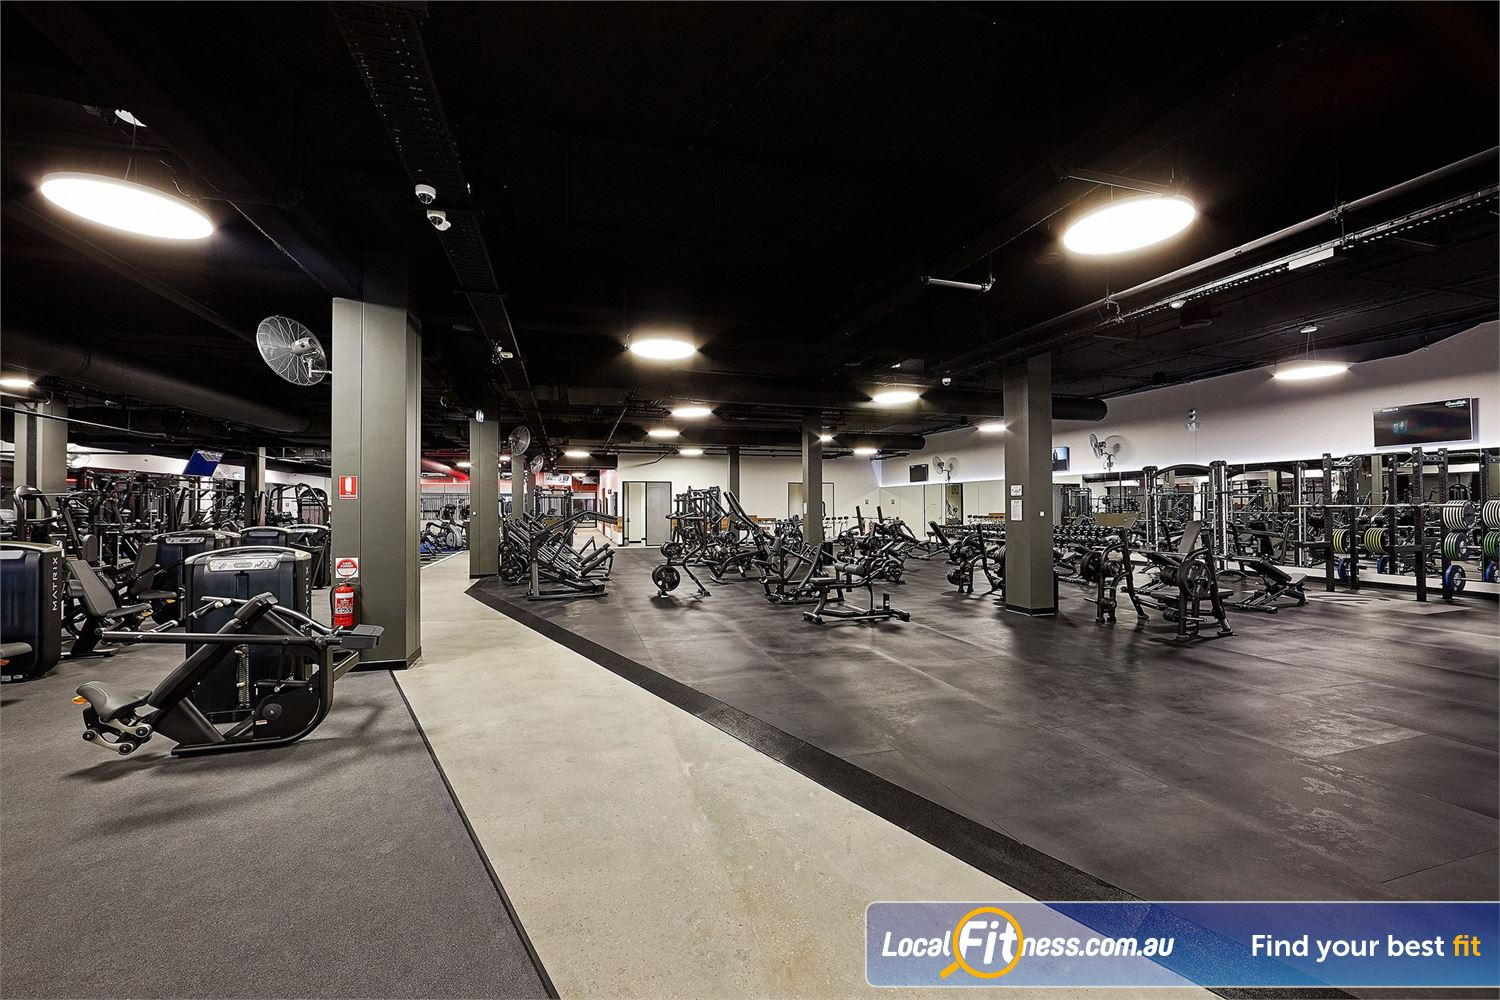 Goodlife Health Clubs Near Grange Our West Lakes gym includes state of the art equipment from MATRIX.